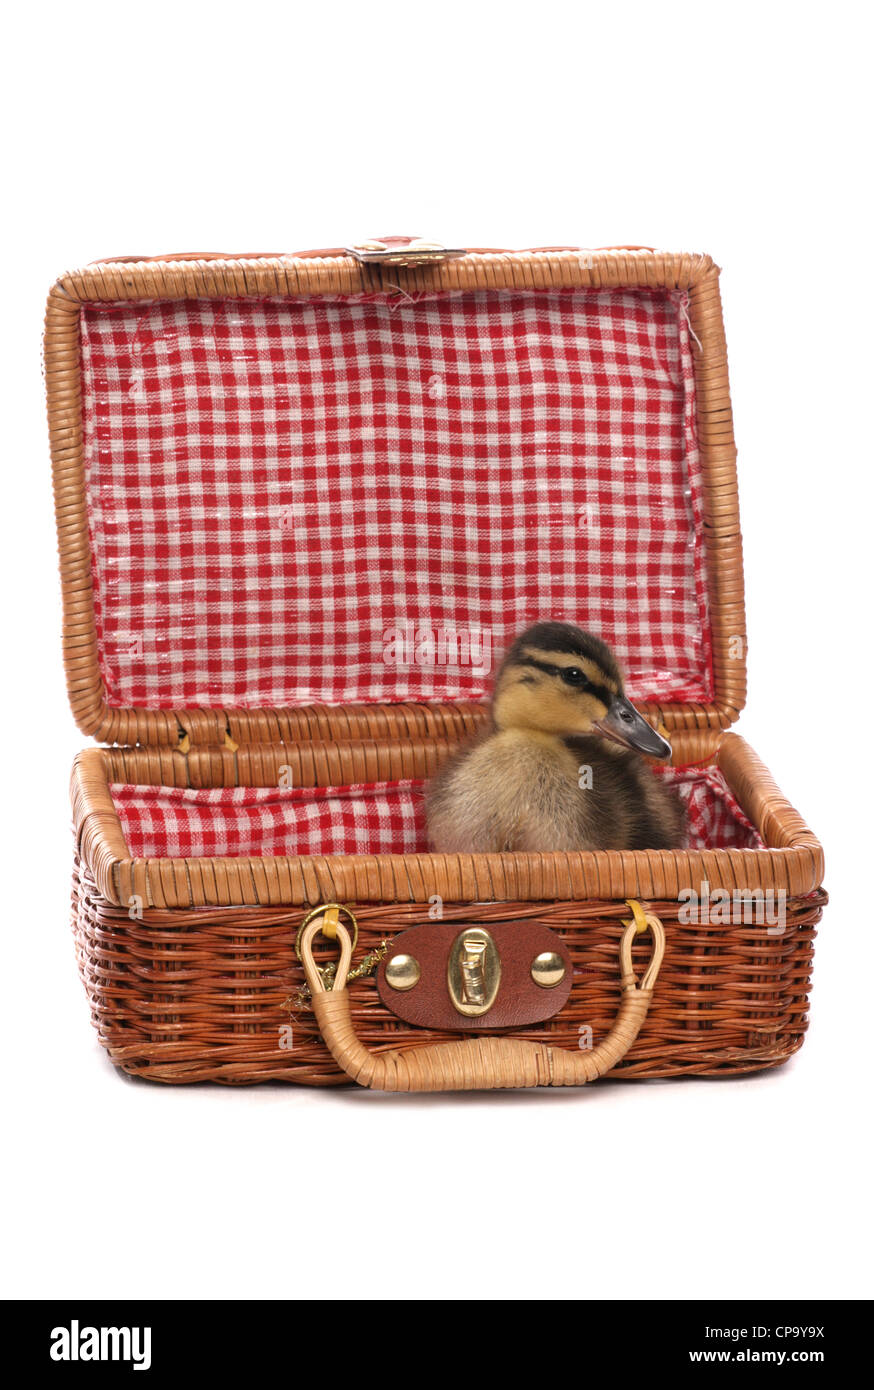 Mallard Anas platyrhynchos Single juvinille sitting in a picnic basket Studio, UK - Stock Image